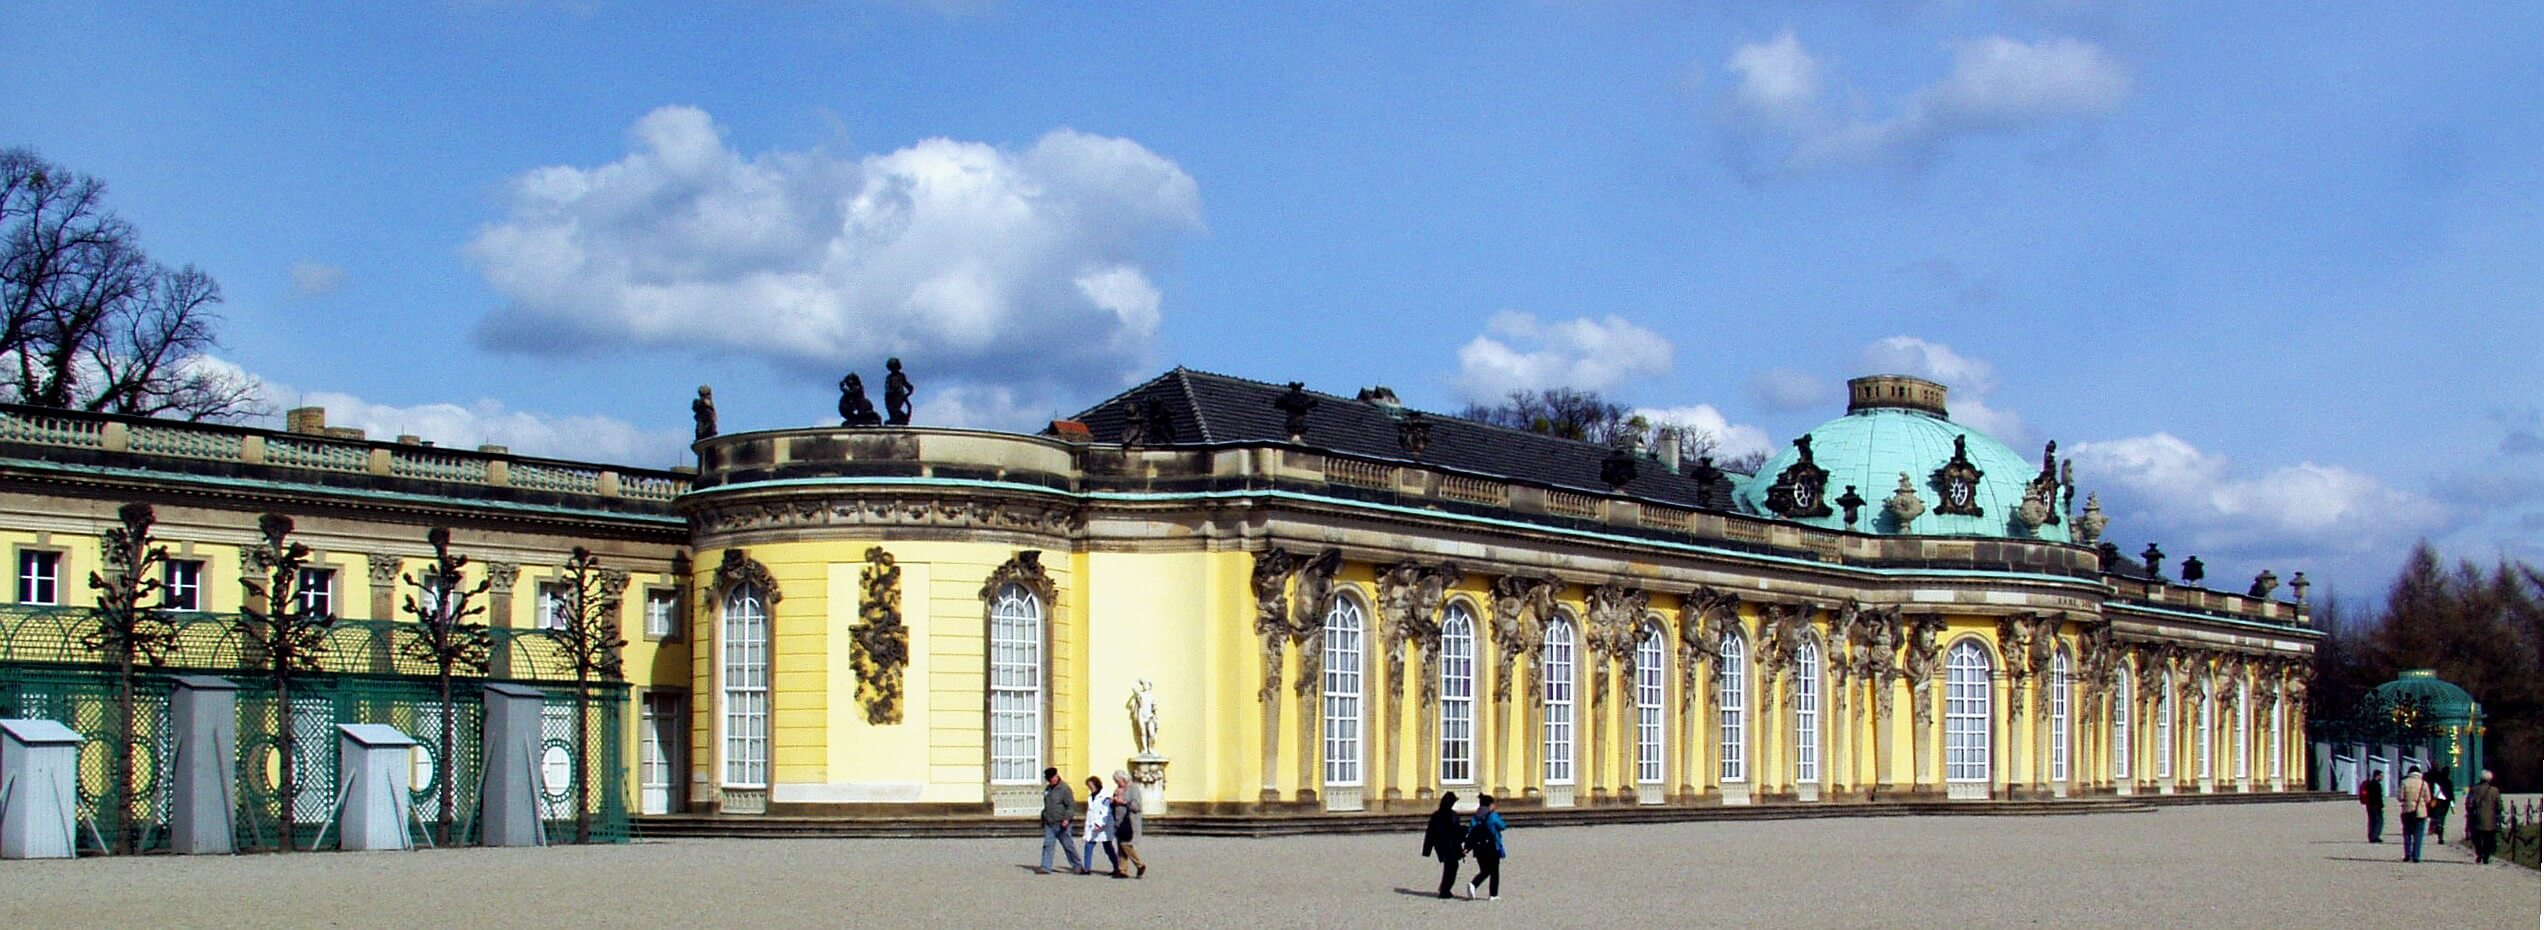 Schloss Sanssouci Photo credit: wikipedia commons